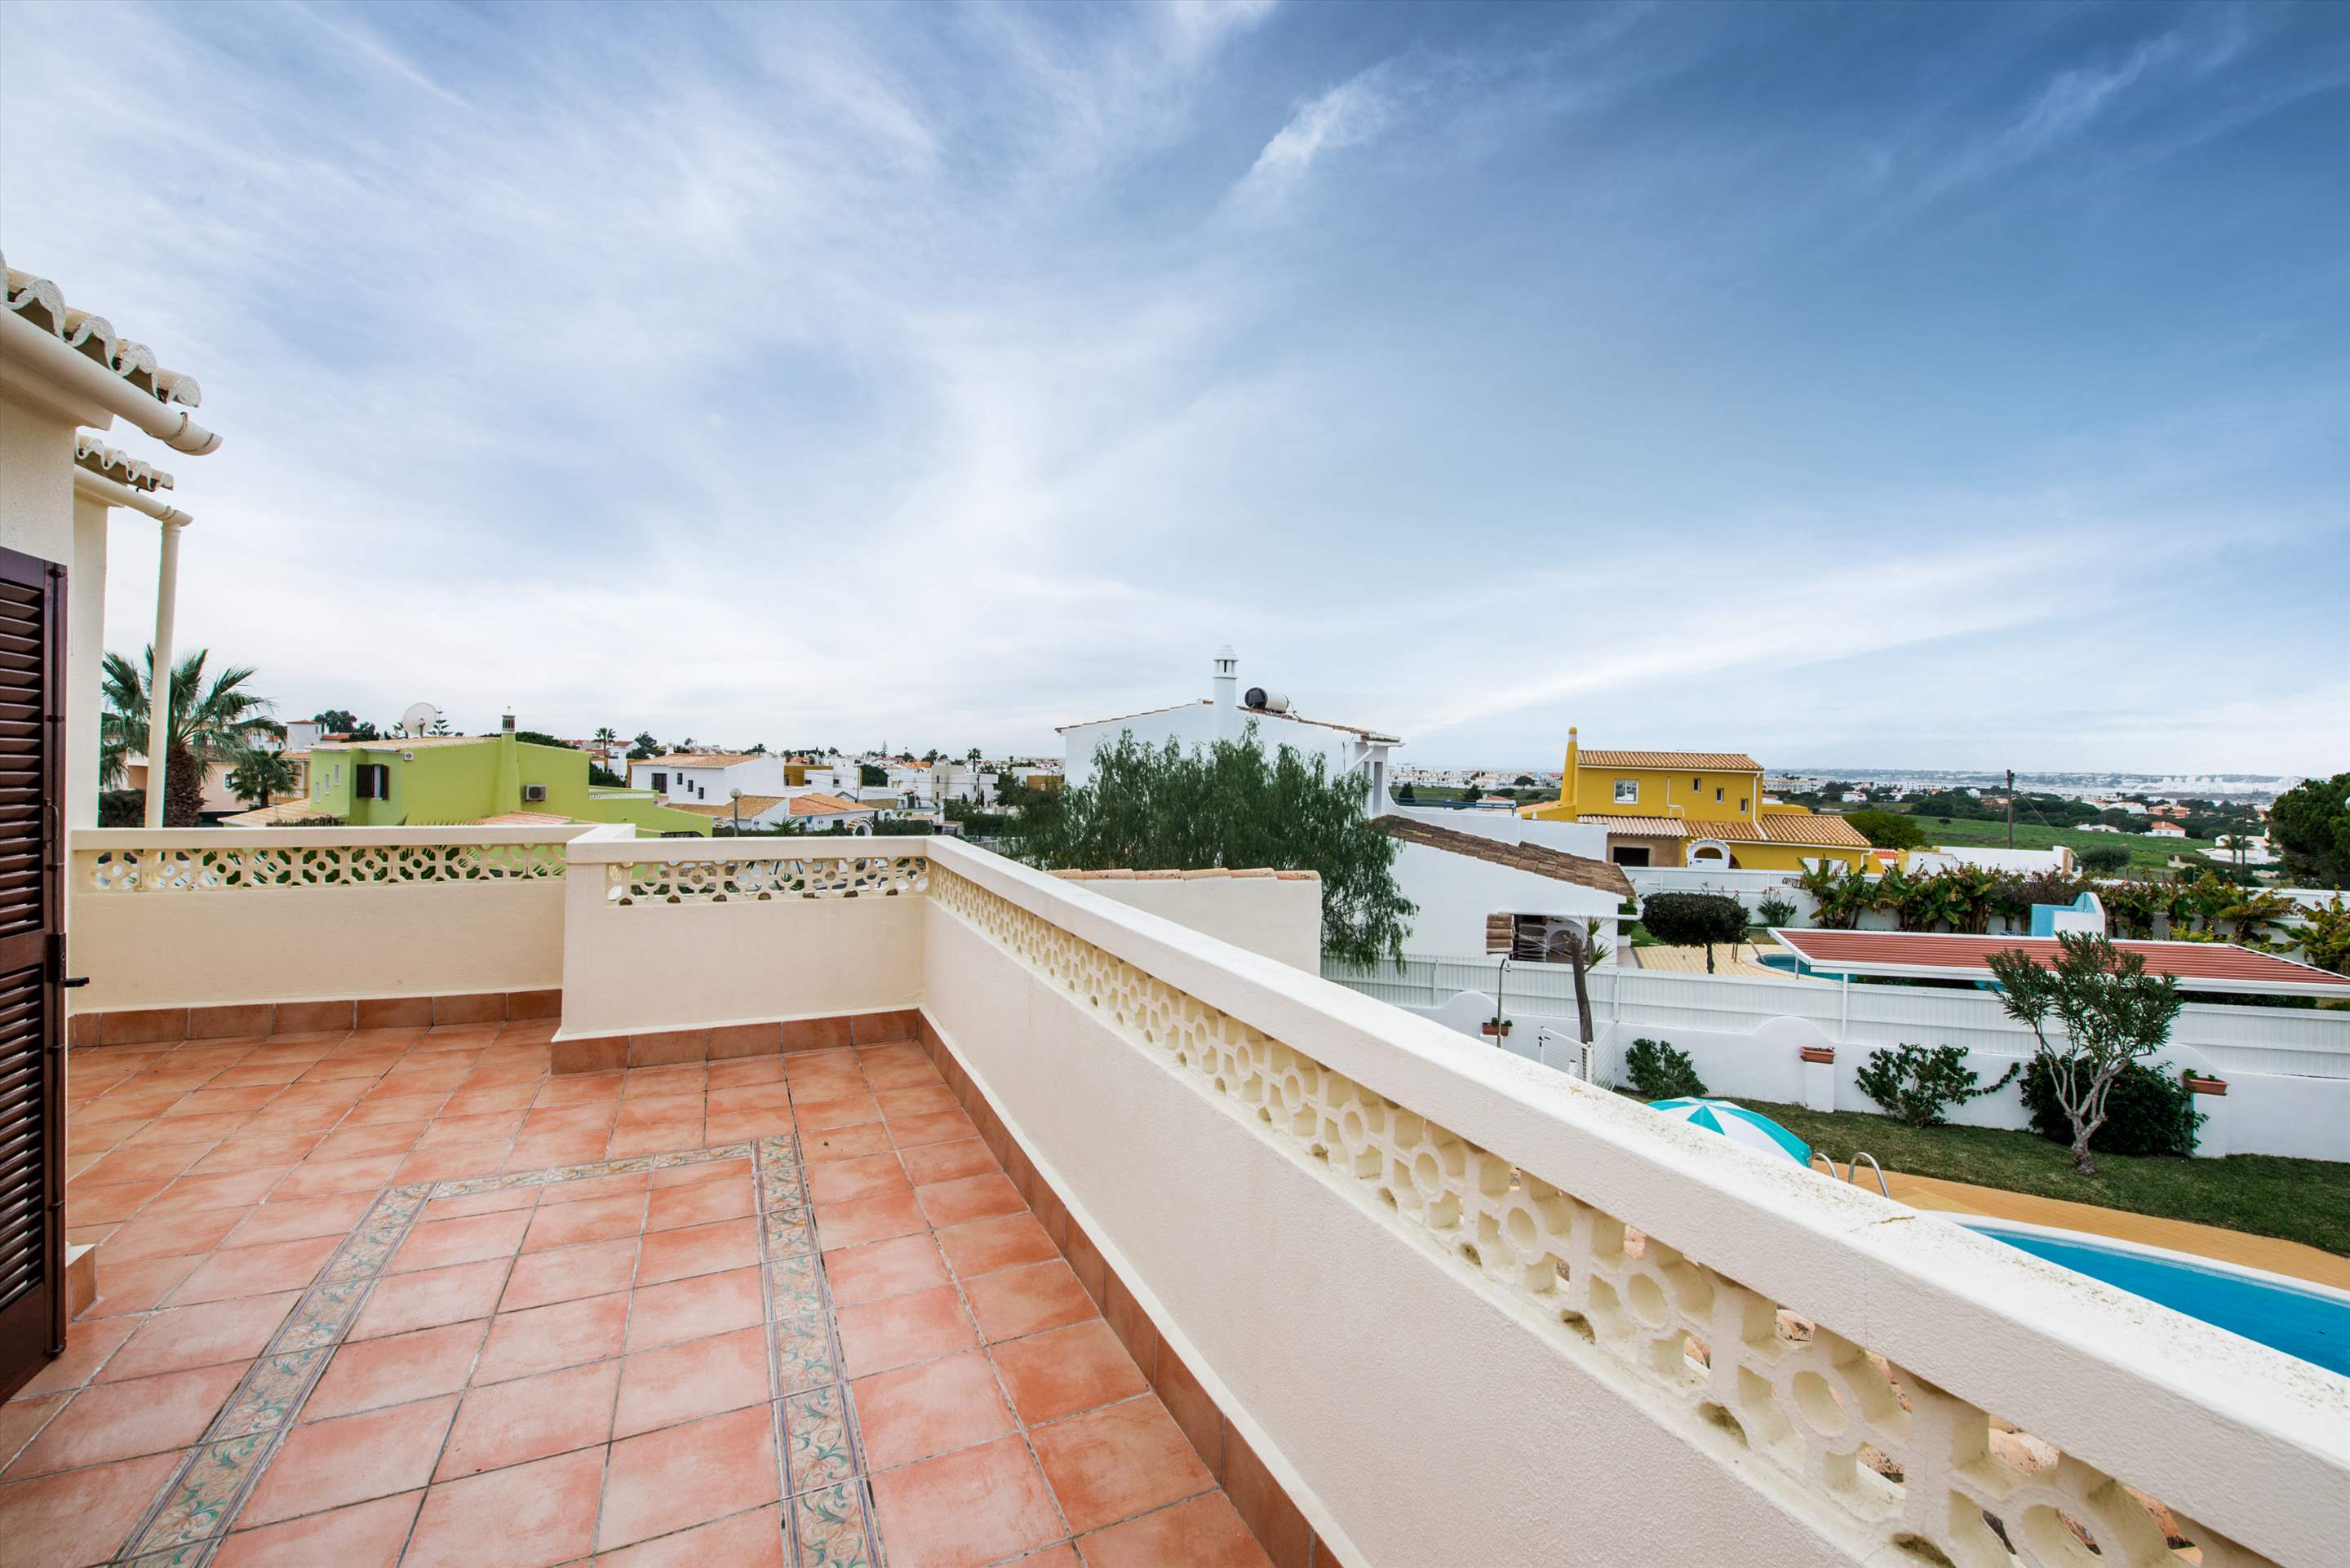 Casa Isabel, 5-6 persons rate, 3 bedroom villa in Gale, Vale da Parra and Guia, Algarve Photo #17